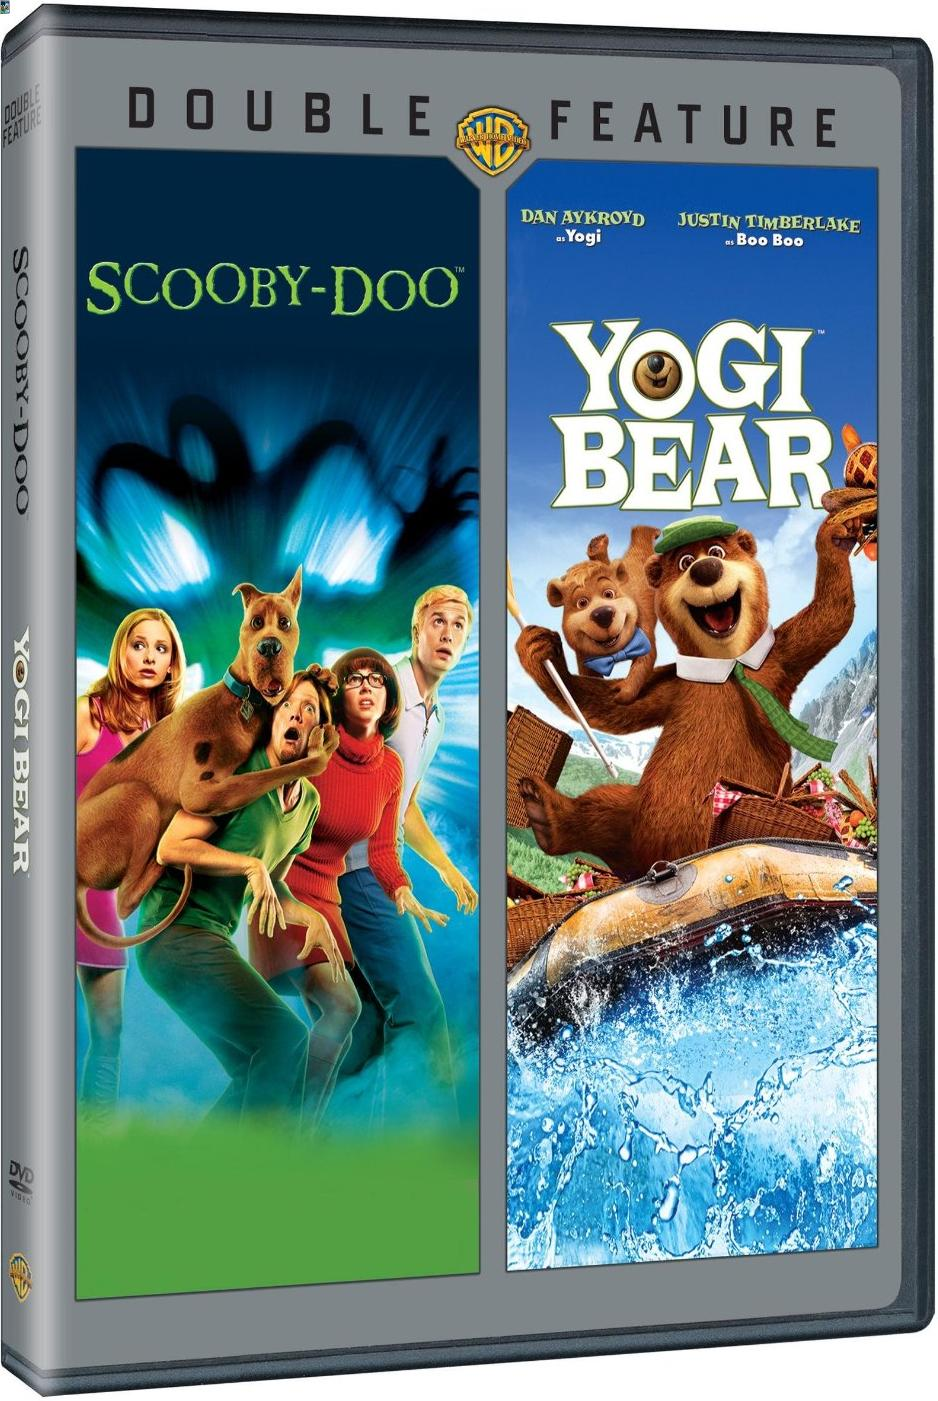 Scooby-Doo/Yogi Bear Double Feature Coming in February